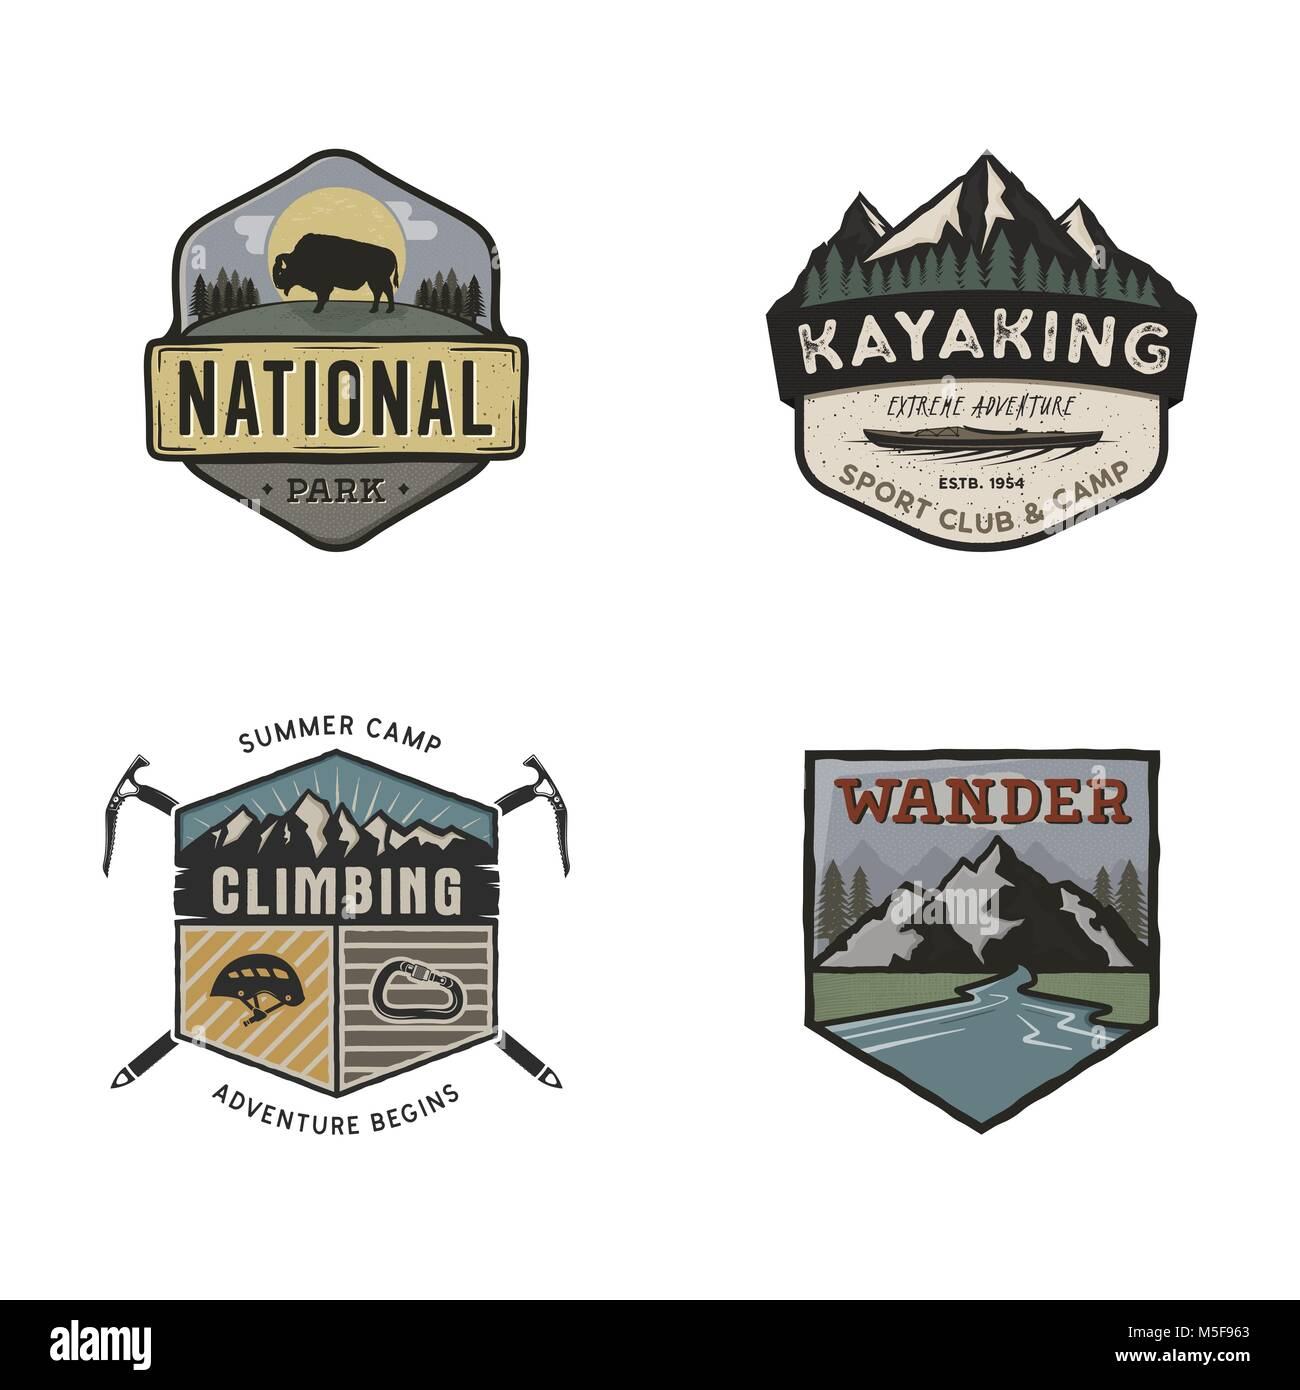 Set of vintage hand drawn travel logos. Camping labels concepts. Mountain expedition badge designs. Travel logos, - Stock Image